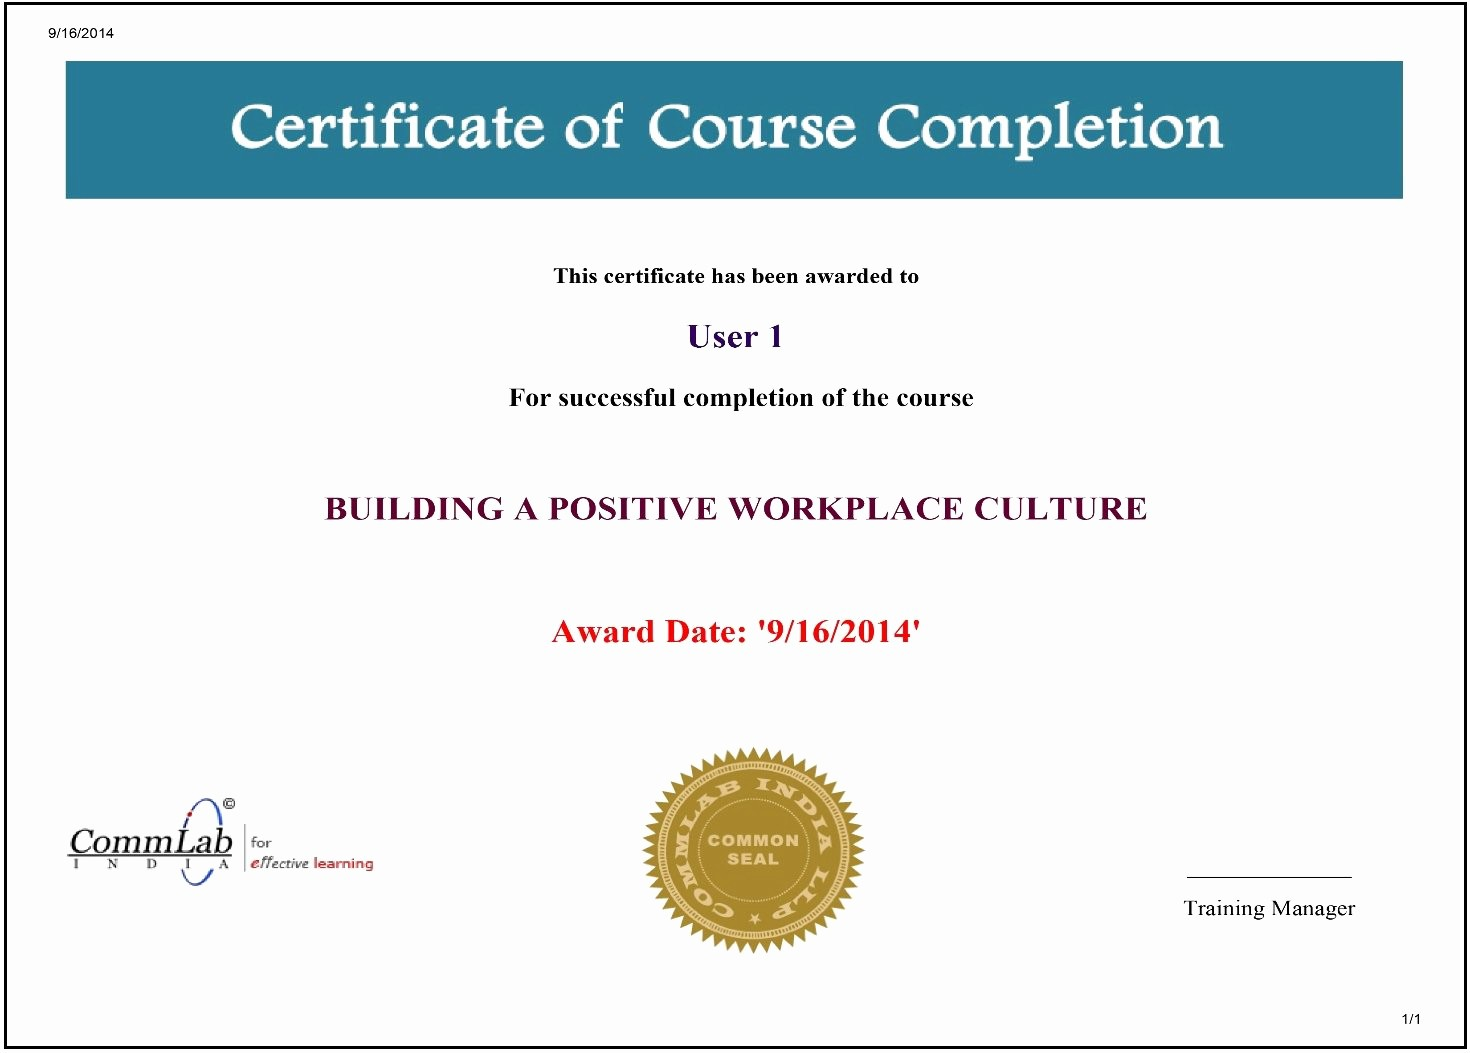 Certificate Of Course Completion Template Lovely Generating A Certificate In Articulate Storyline Using